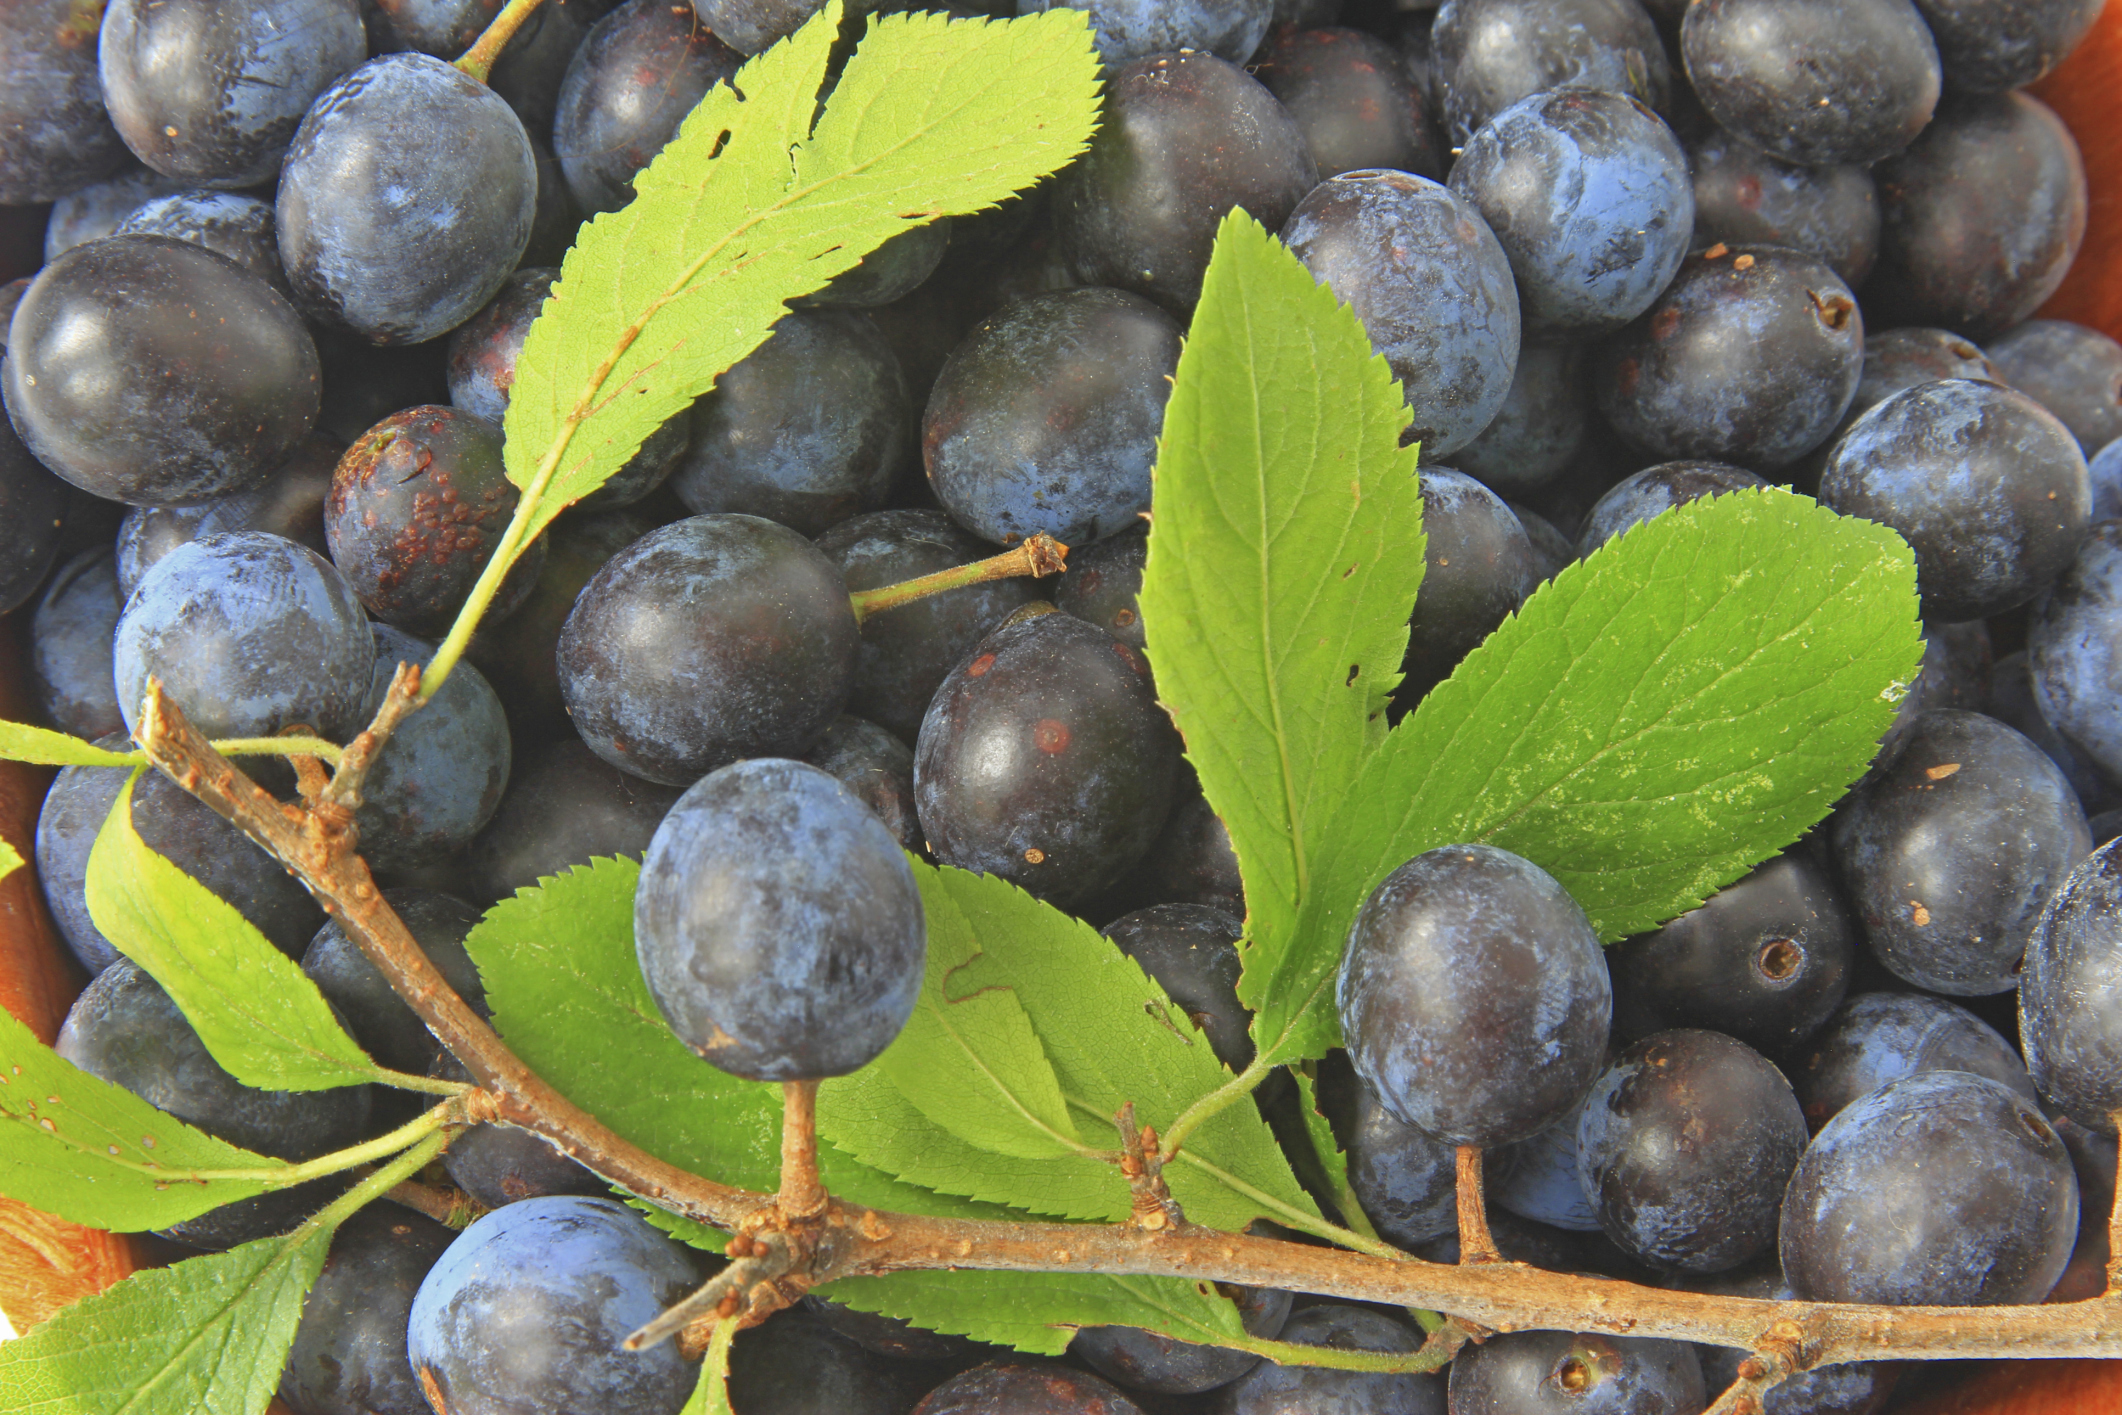 Blackthorn bushes have been hit by the pocket plum fungus resulting in a poor sloe harvest